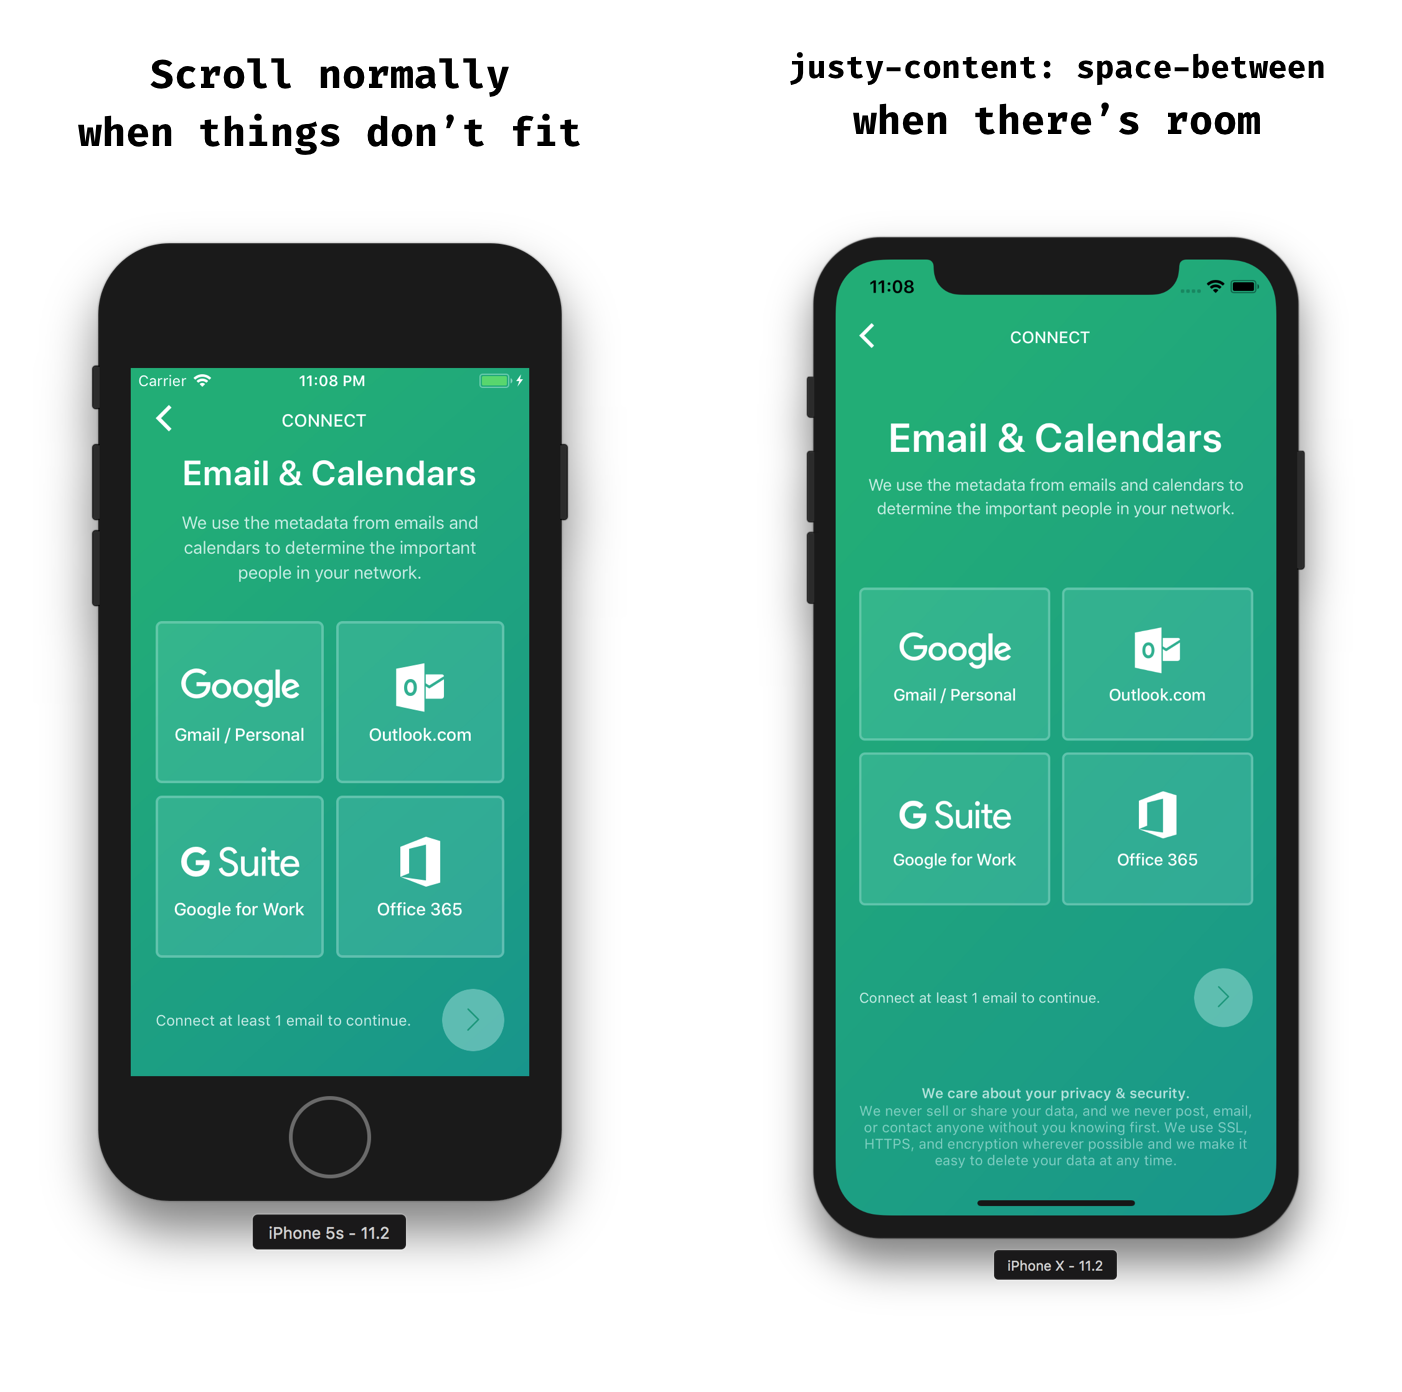 Taming react natives scrollview with flex peter piekarczyk medium a comparison between what the screens should look like on an iphone 5s vs iphone x ccuart Gallery